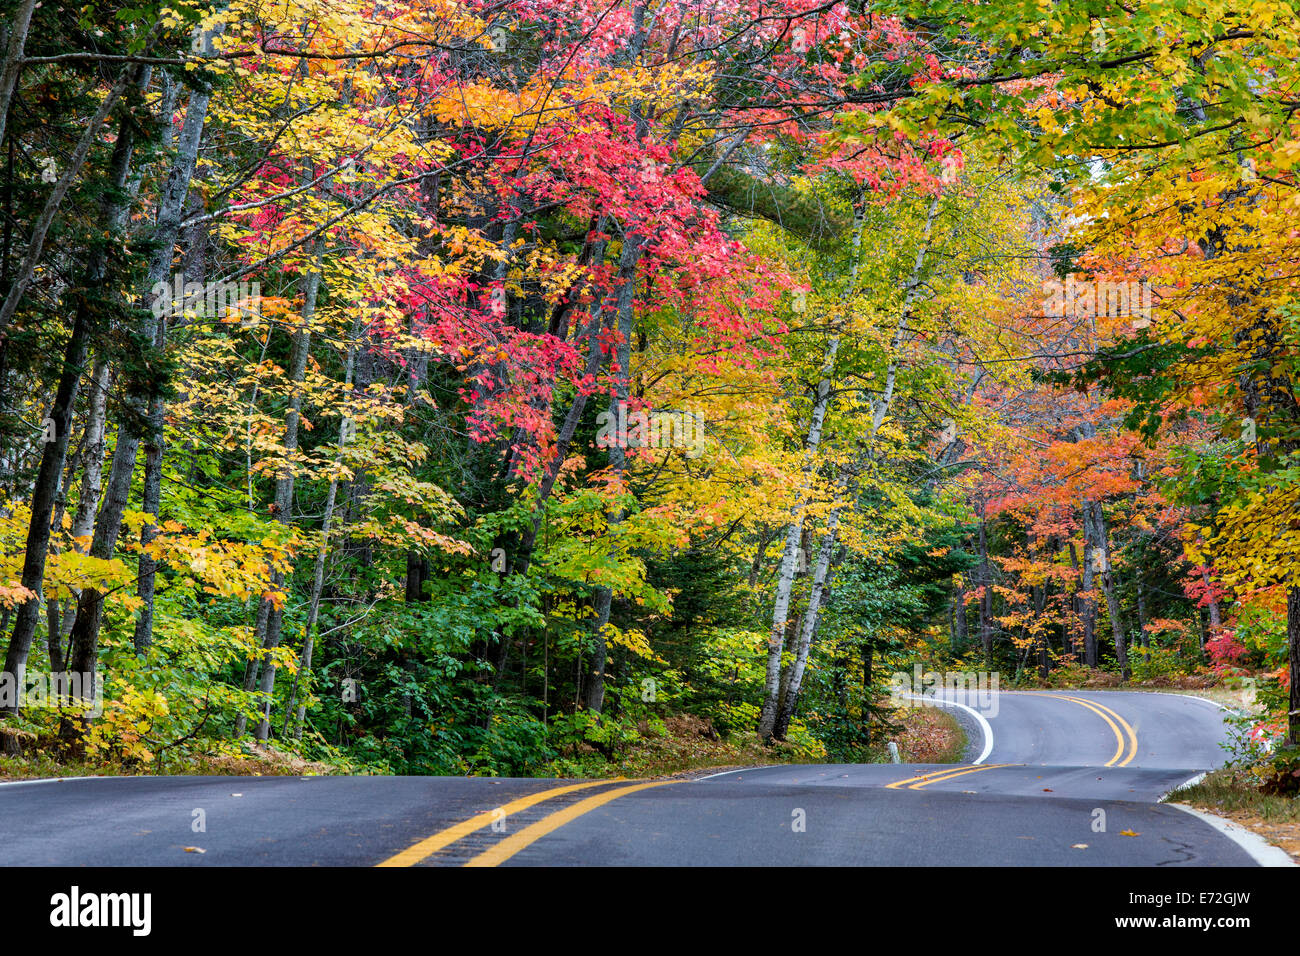 Tunnel Of Trees Michigan Stock Photos & Tunnel Of Trees Michigan ...